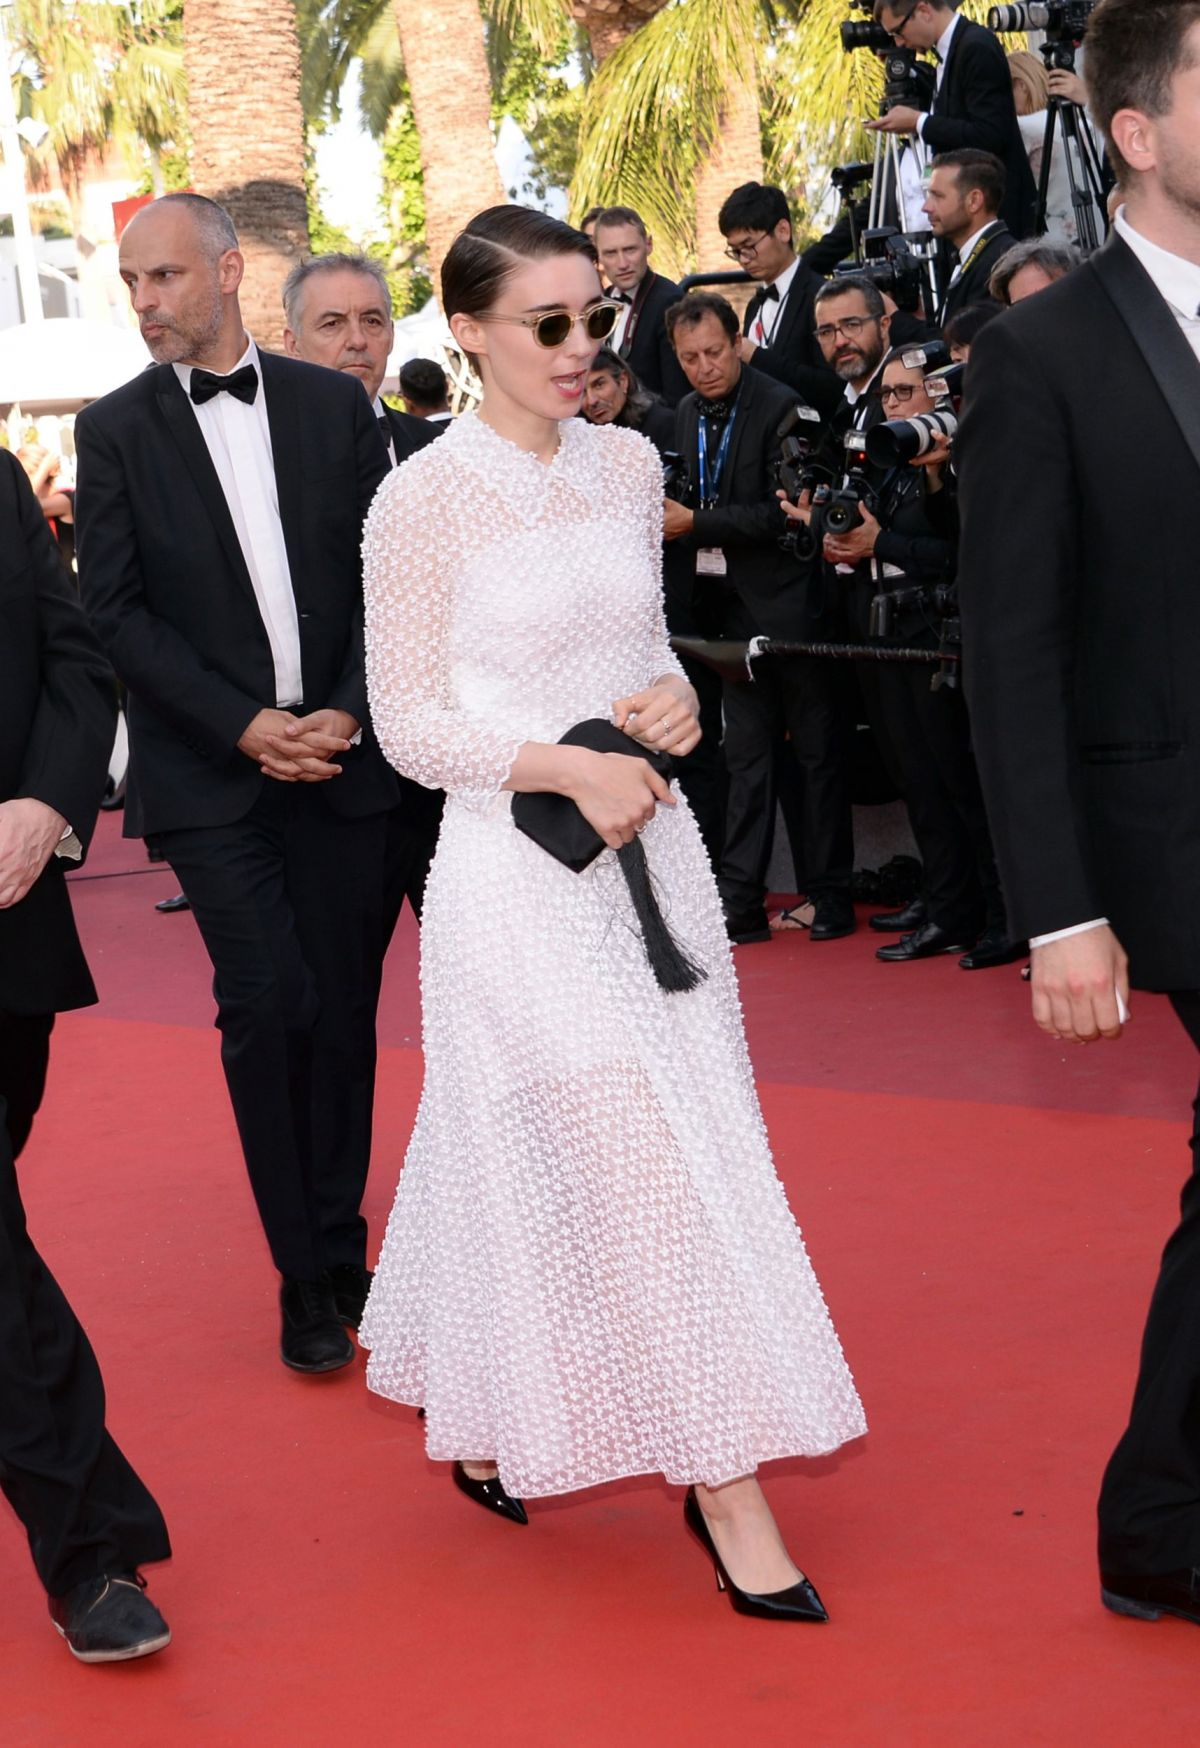 ROONEY MARA at 70th Annual Cannes Film Festival Closing Ceremony 05/28/2017